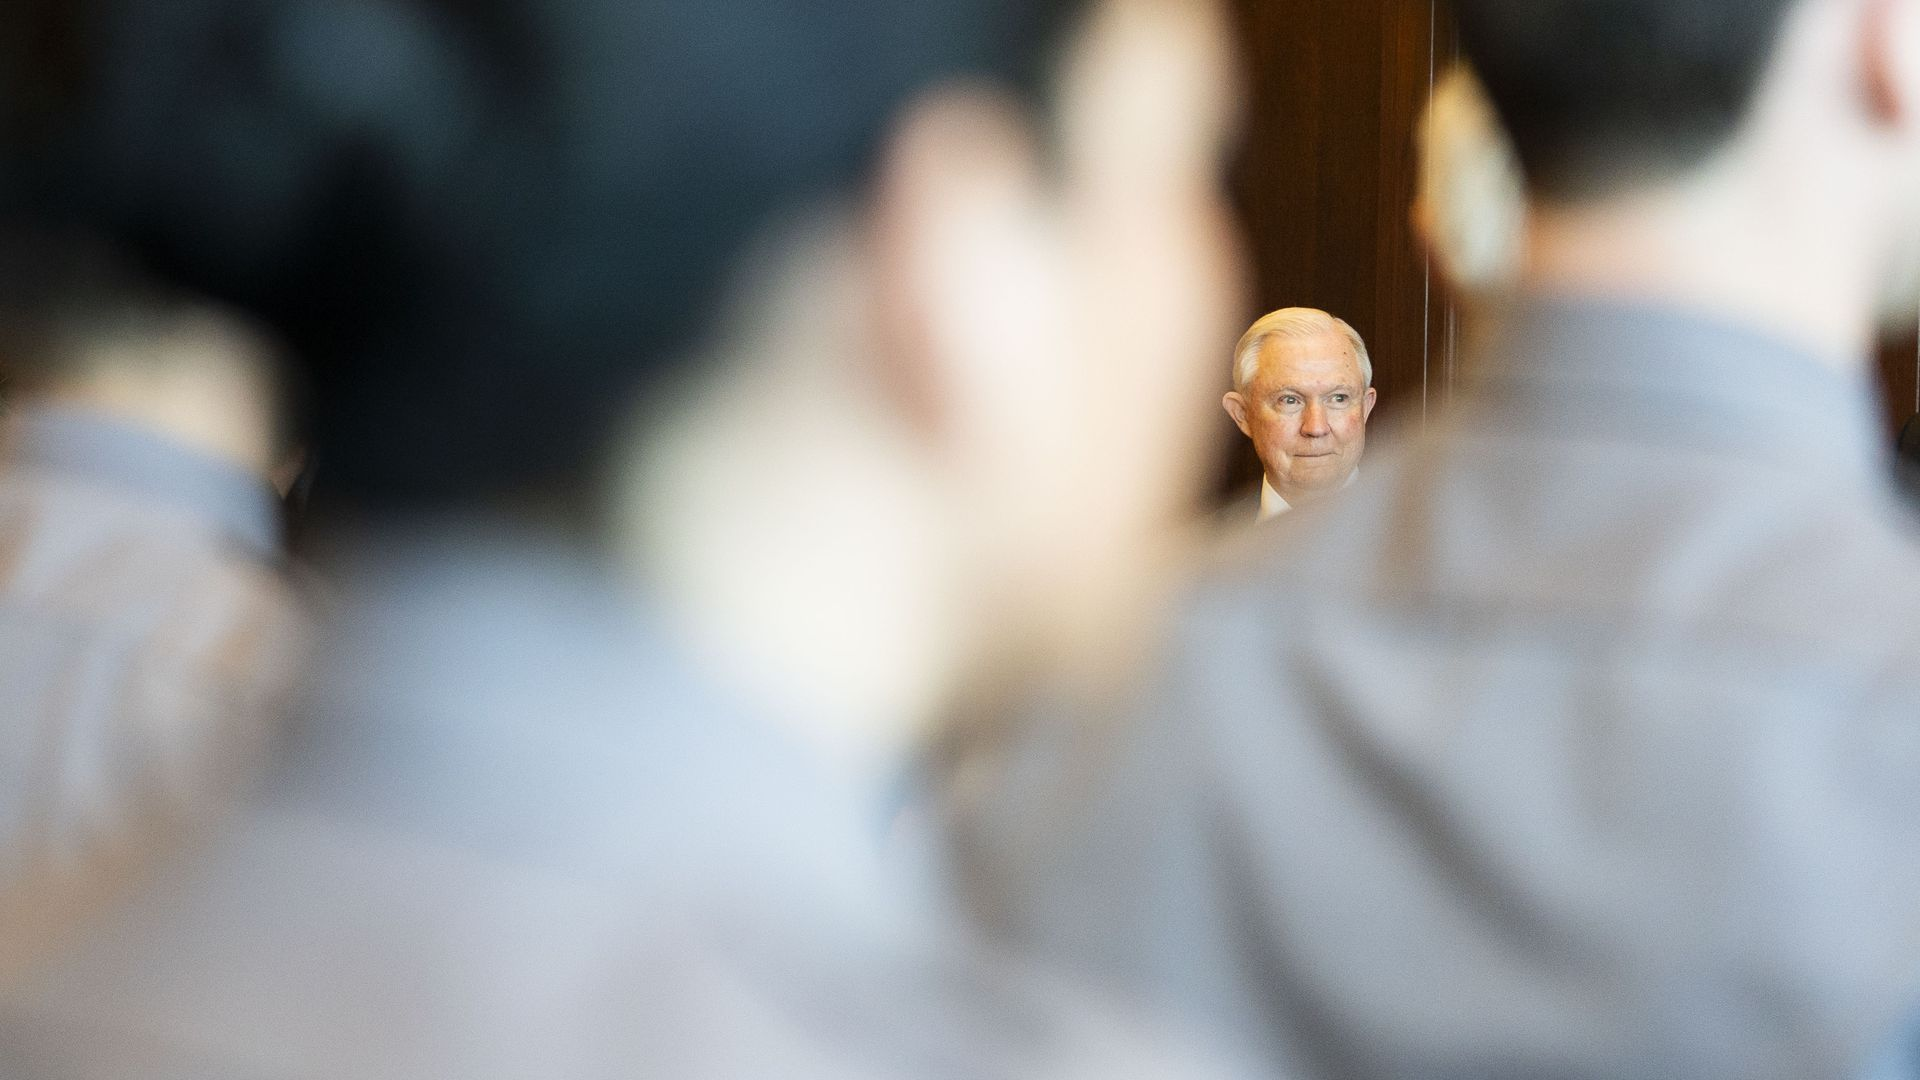 Jeff Sessions seen through a blurry foreground of men wearing grey shirts